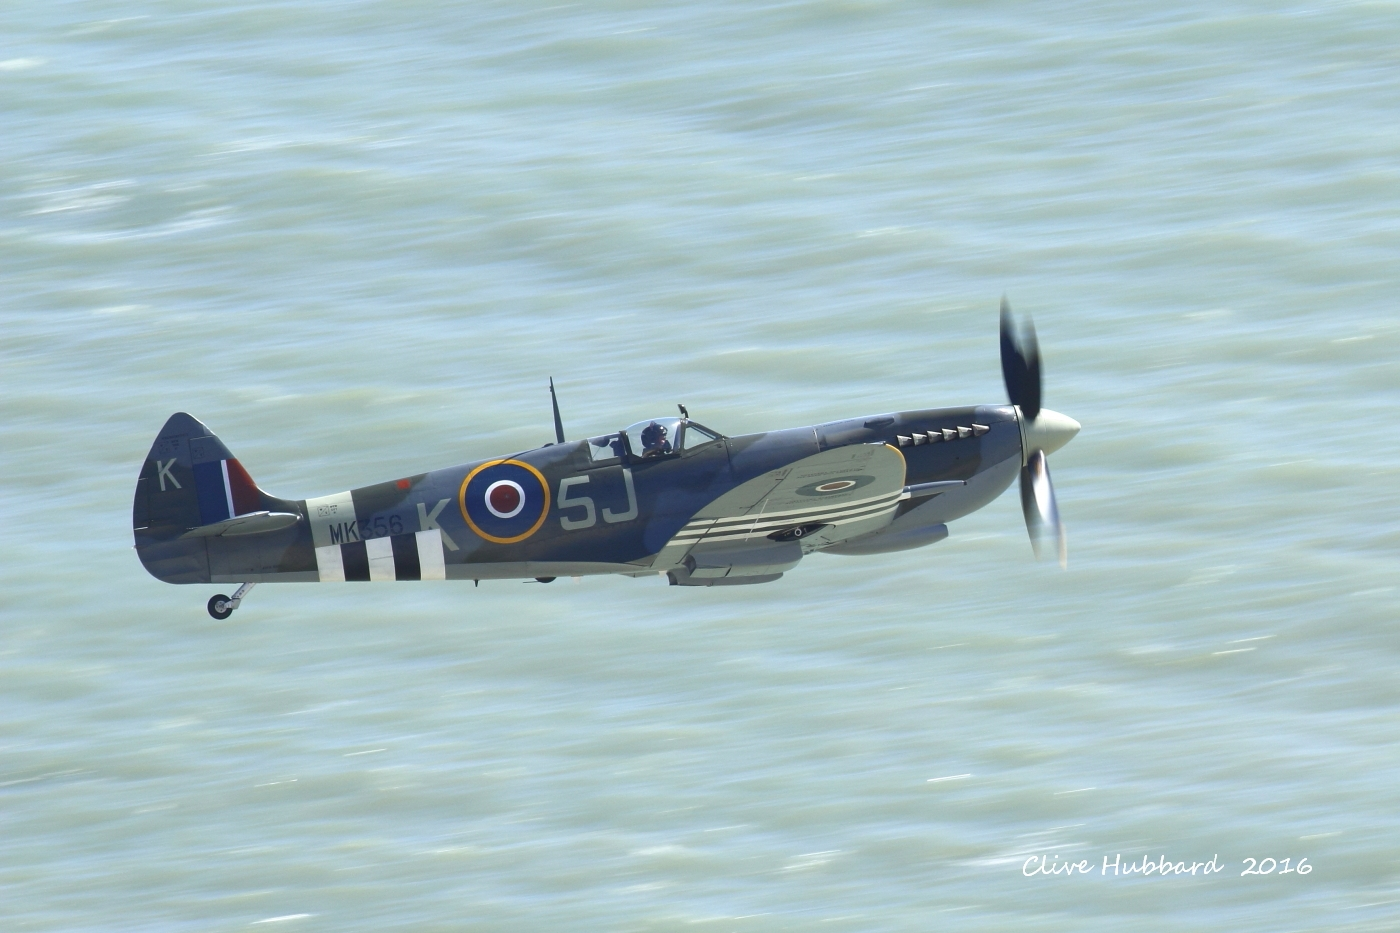 Spitfire MK LFiXe from Beachy Head 2016